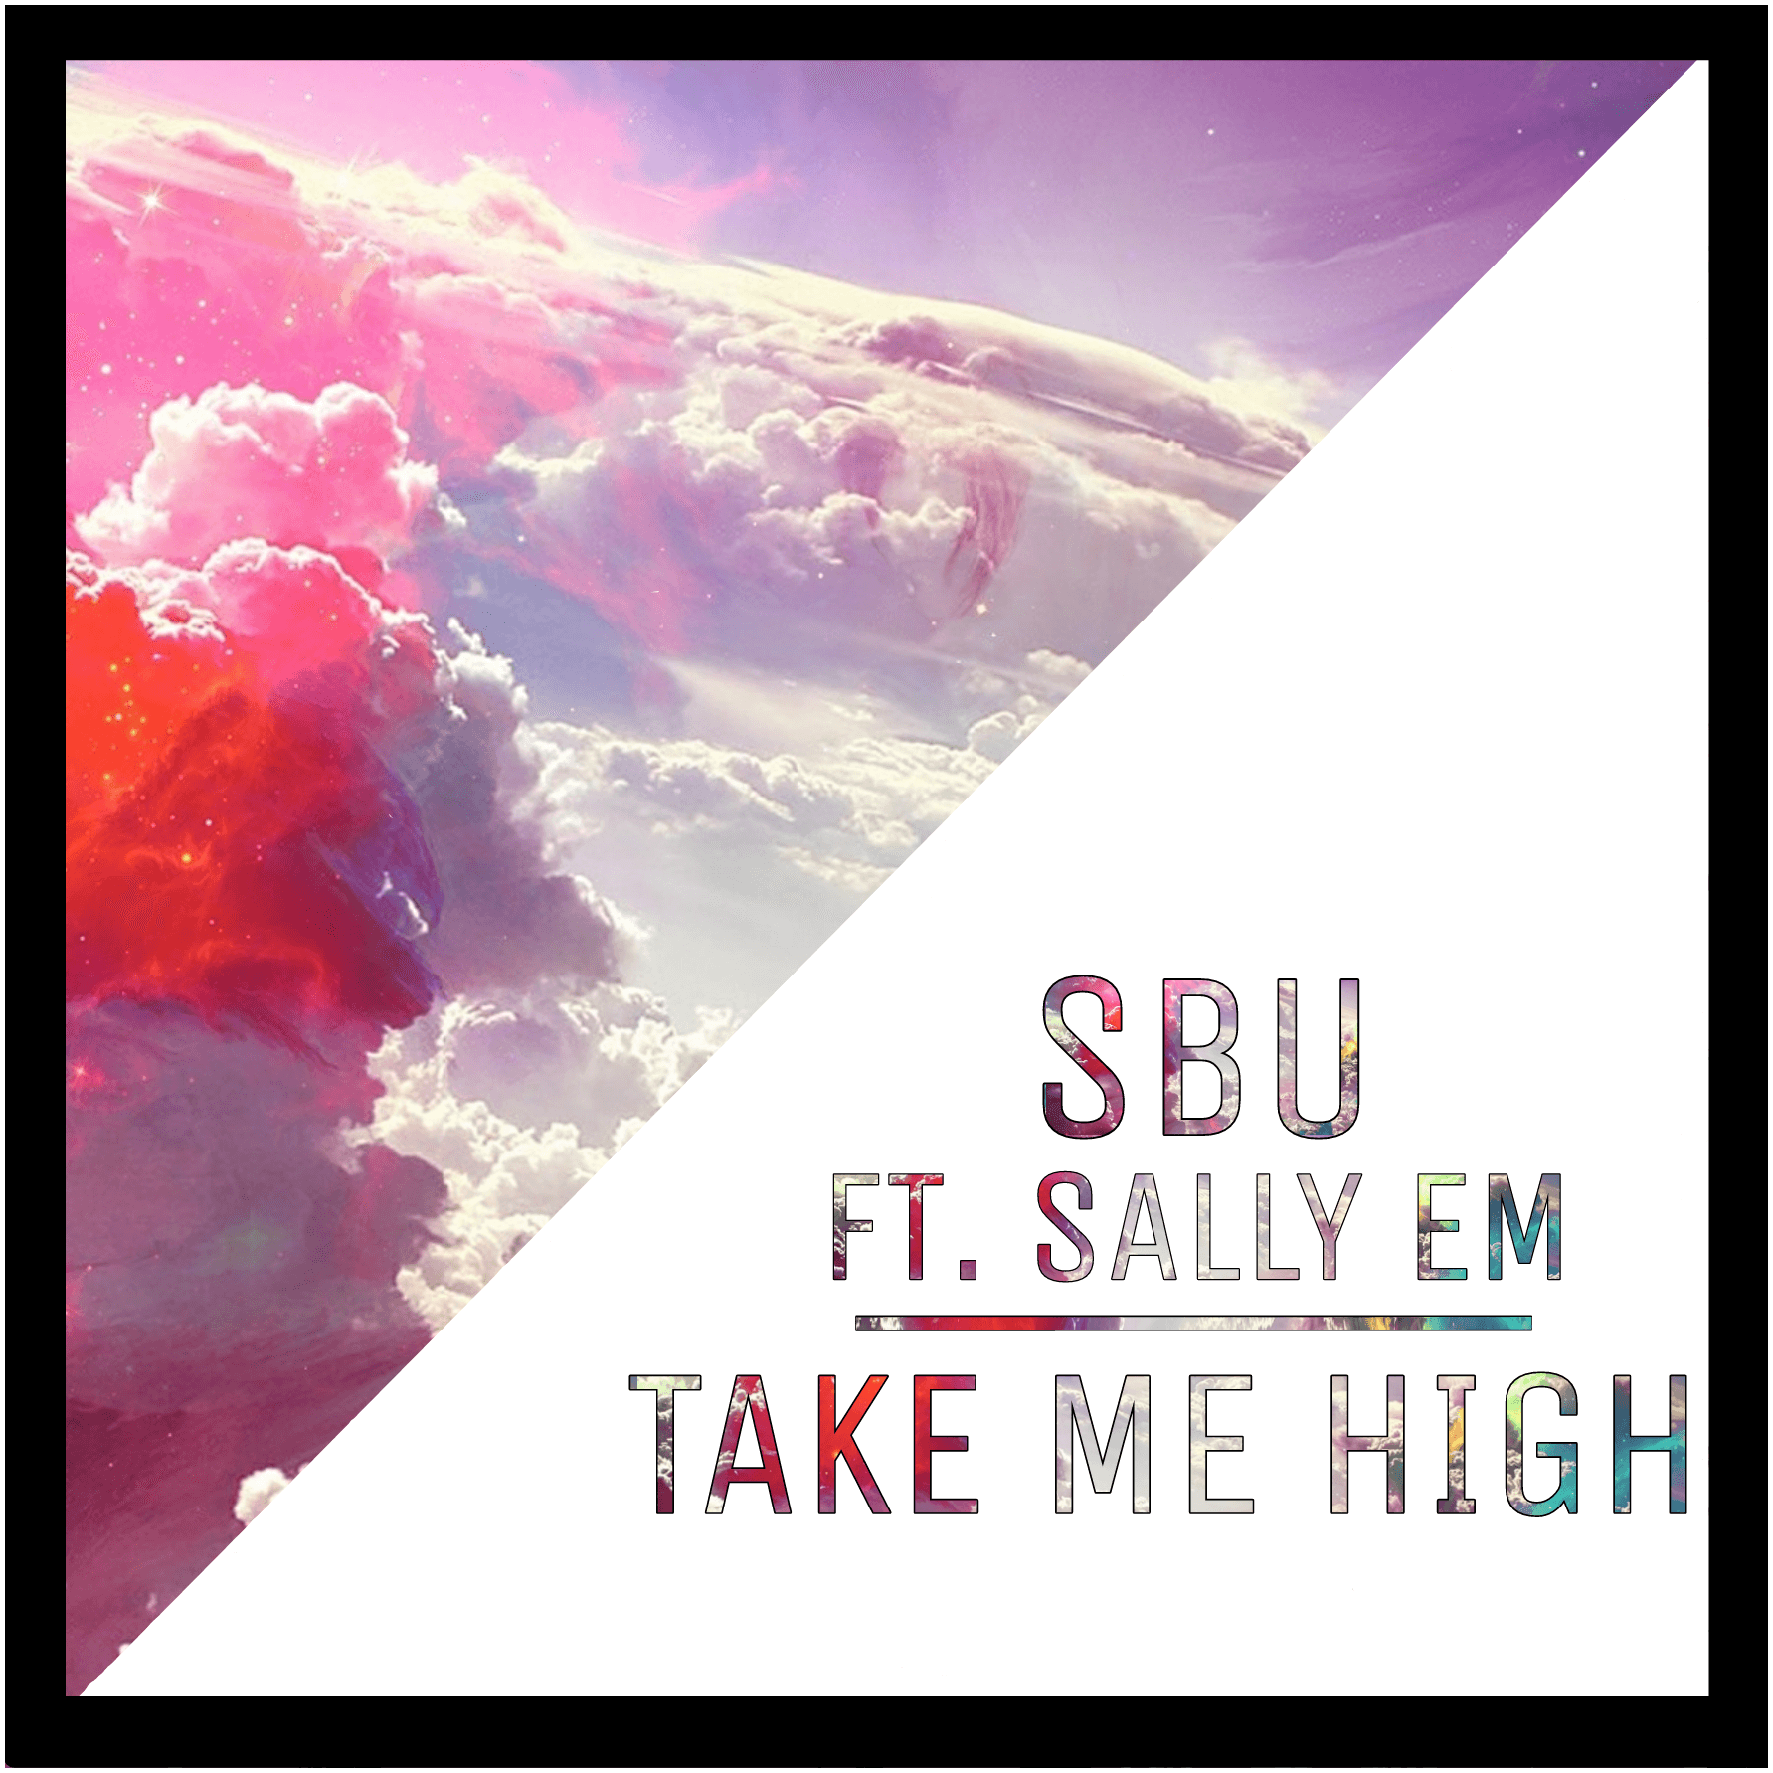 Sally Moy Take Me High